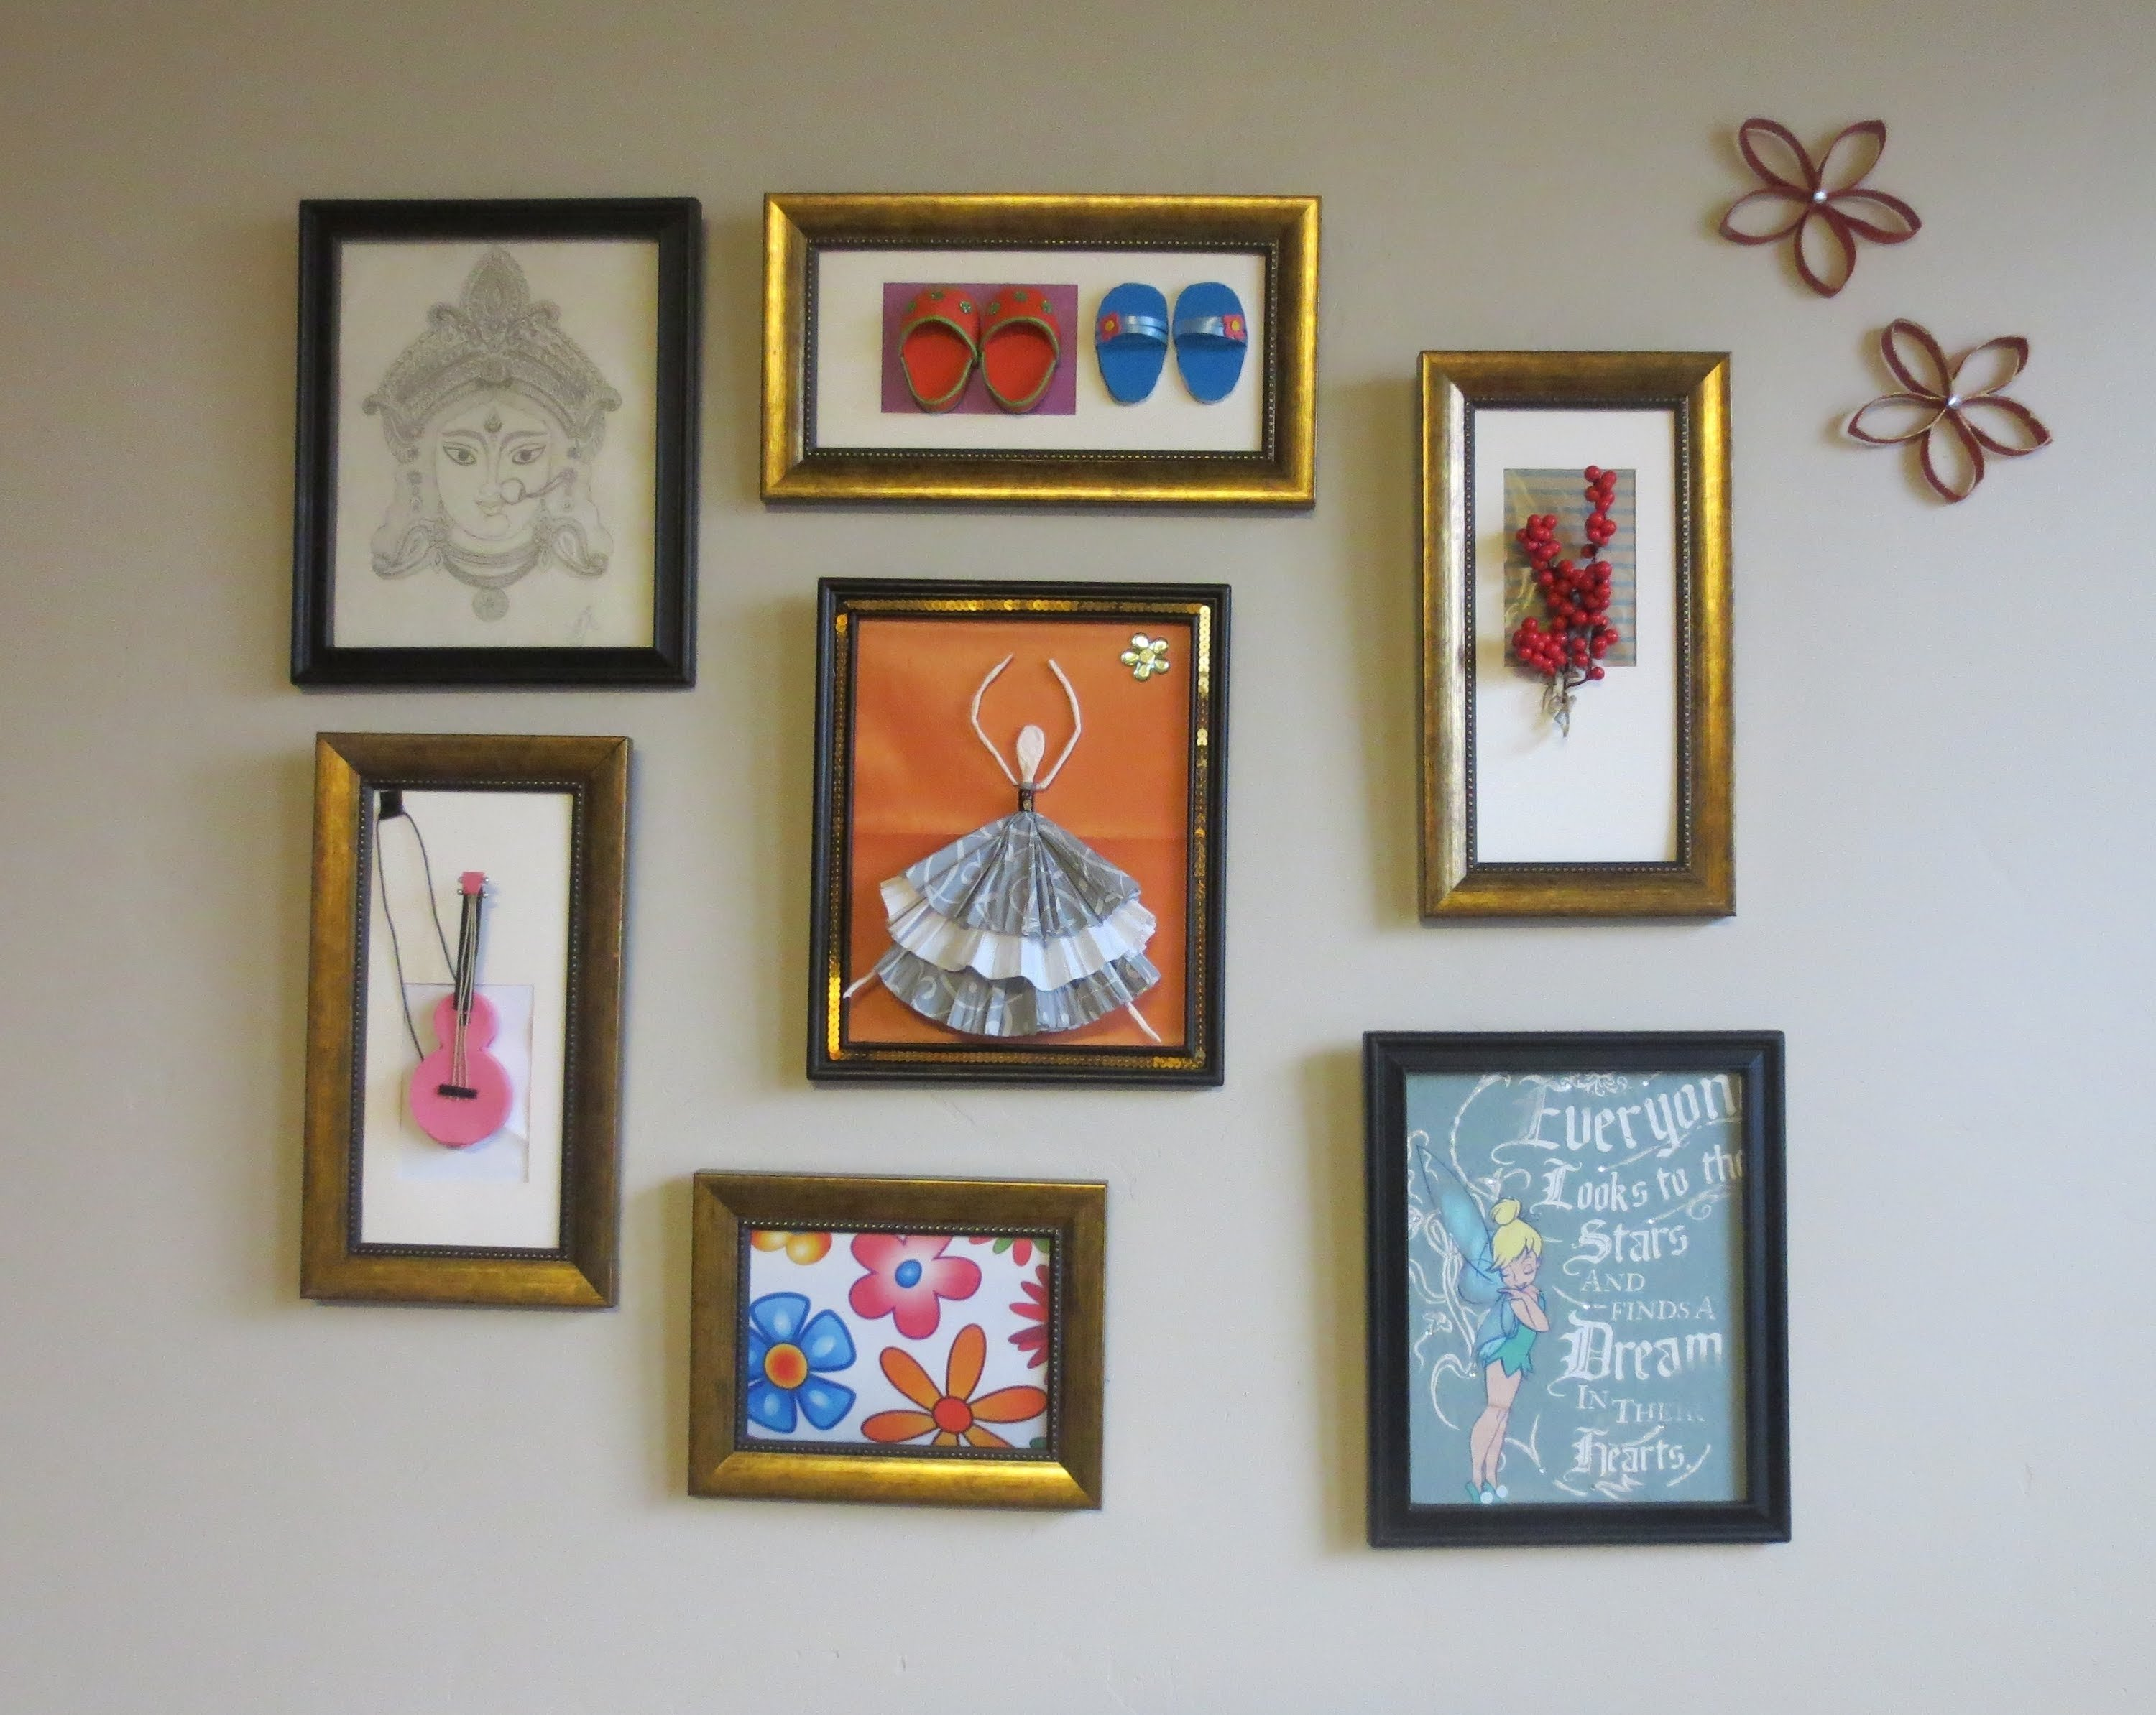 10 Most Popular Picture Frame Collage Ideas For Wall home decor tshirt graphic 3d wall art picture frame collage 2020